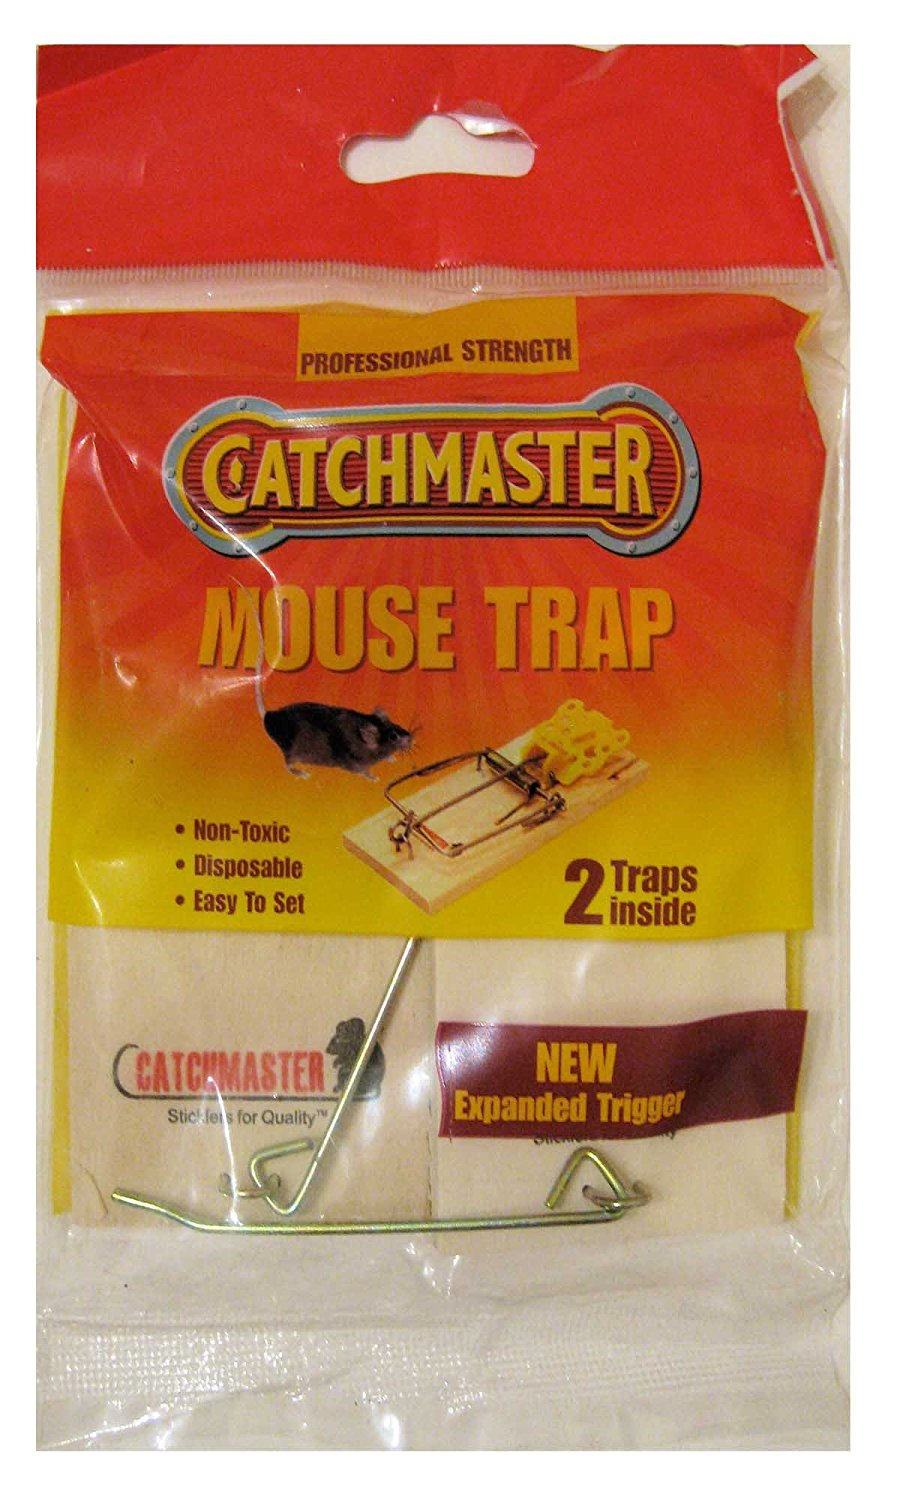 Details about CATCHMASTER - Mouse Wood Trap - 2 Traps